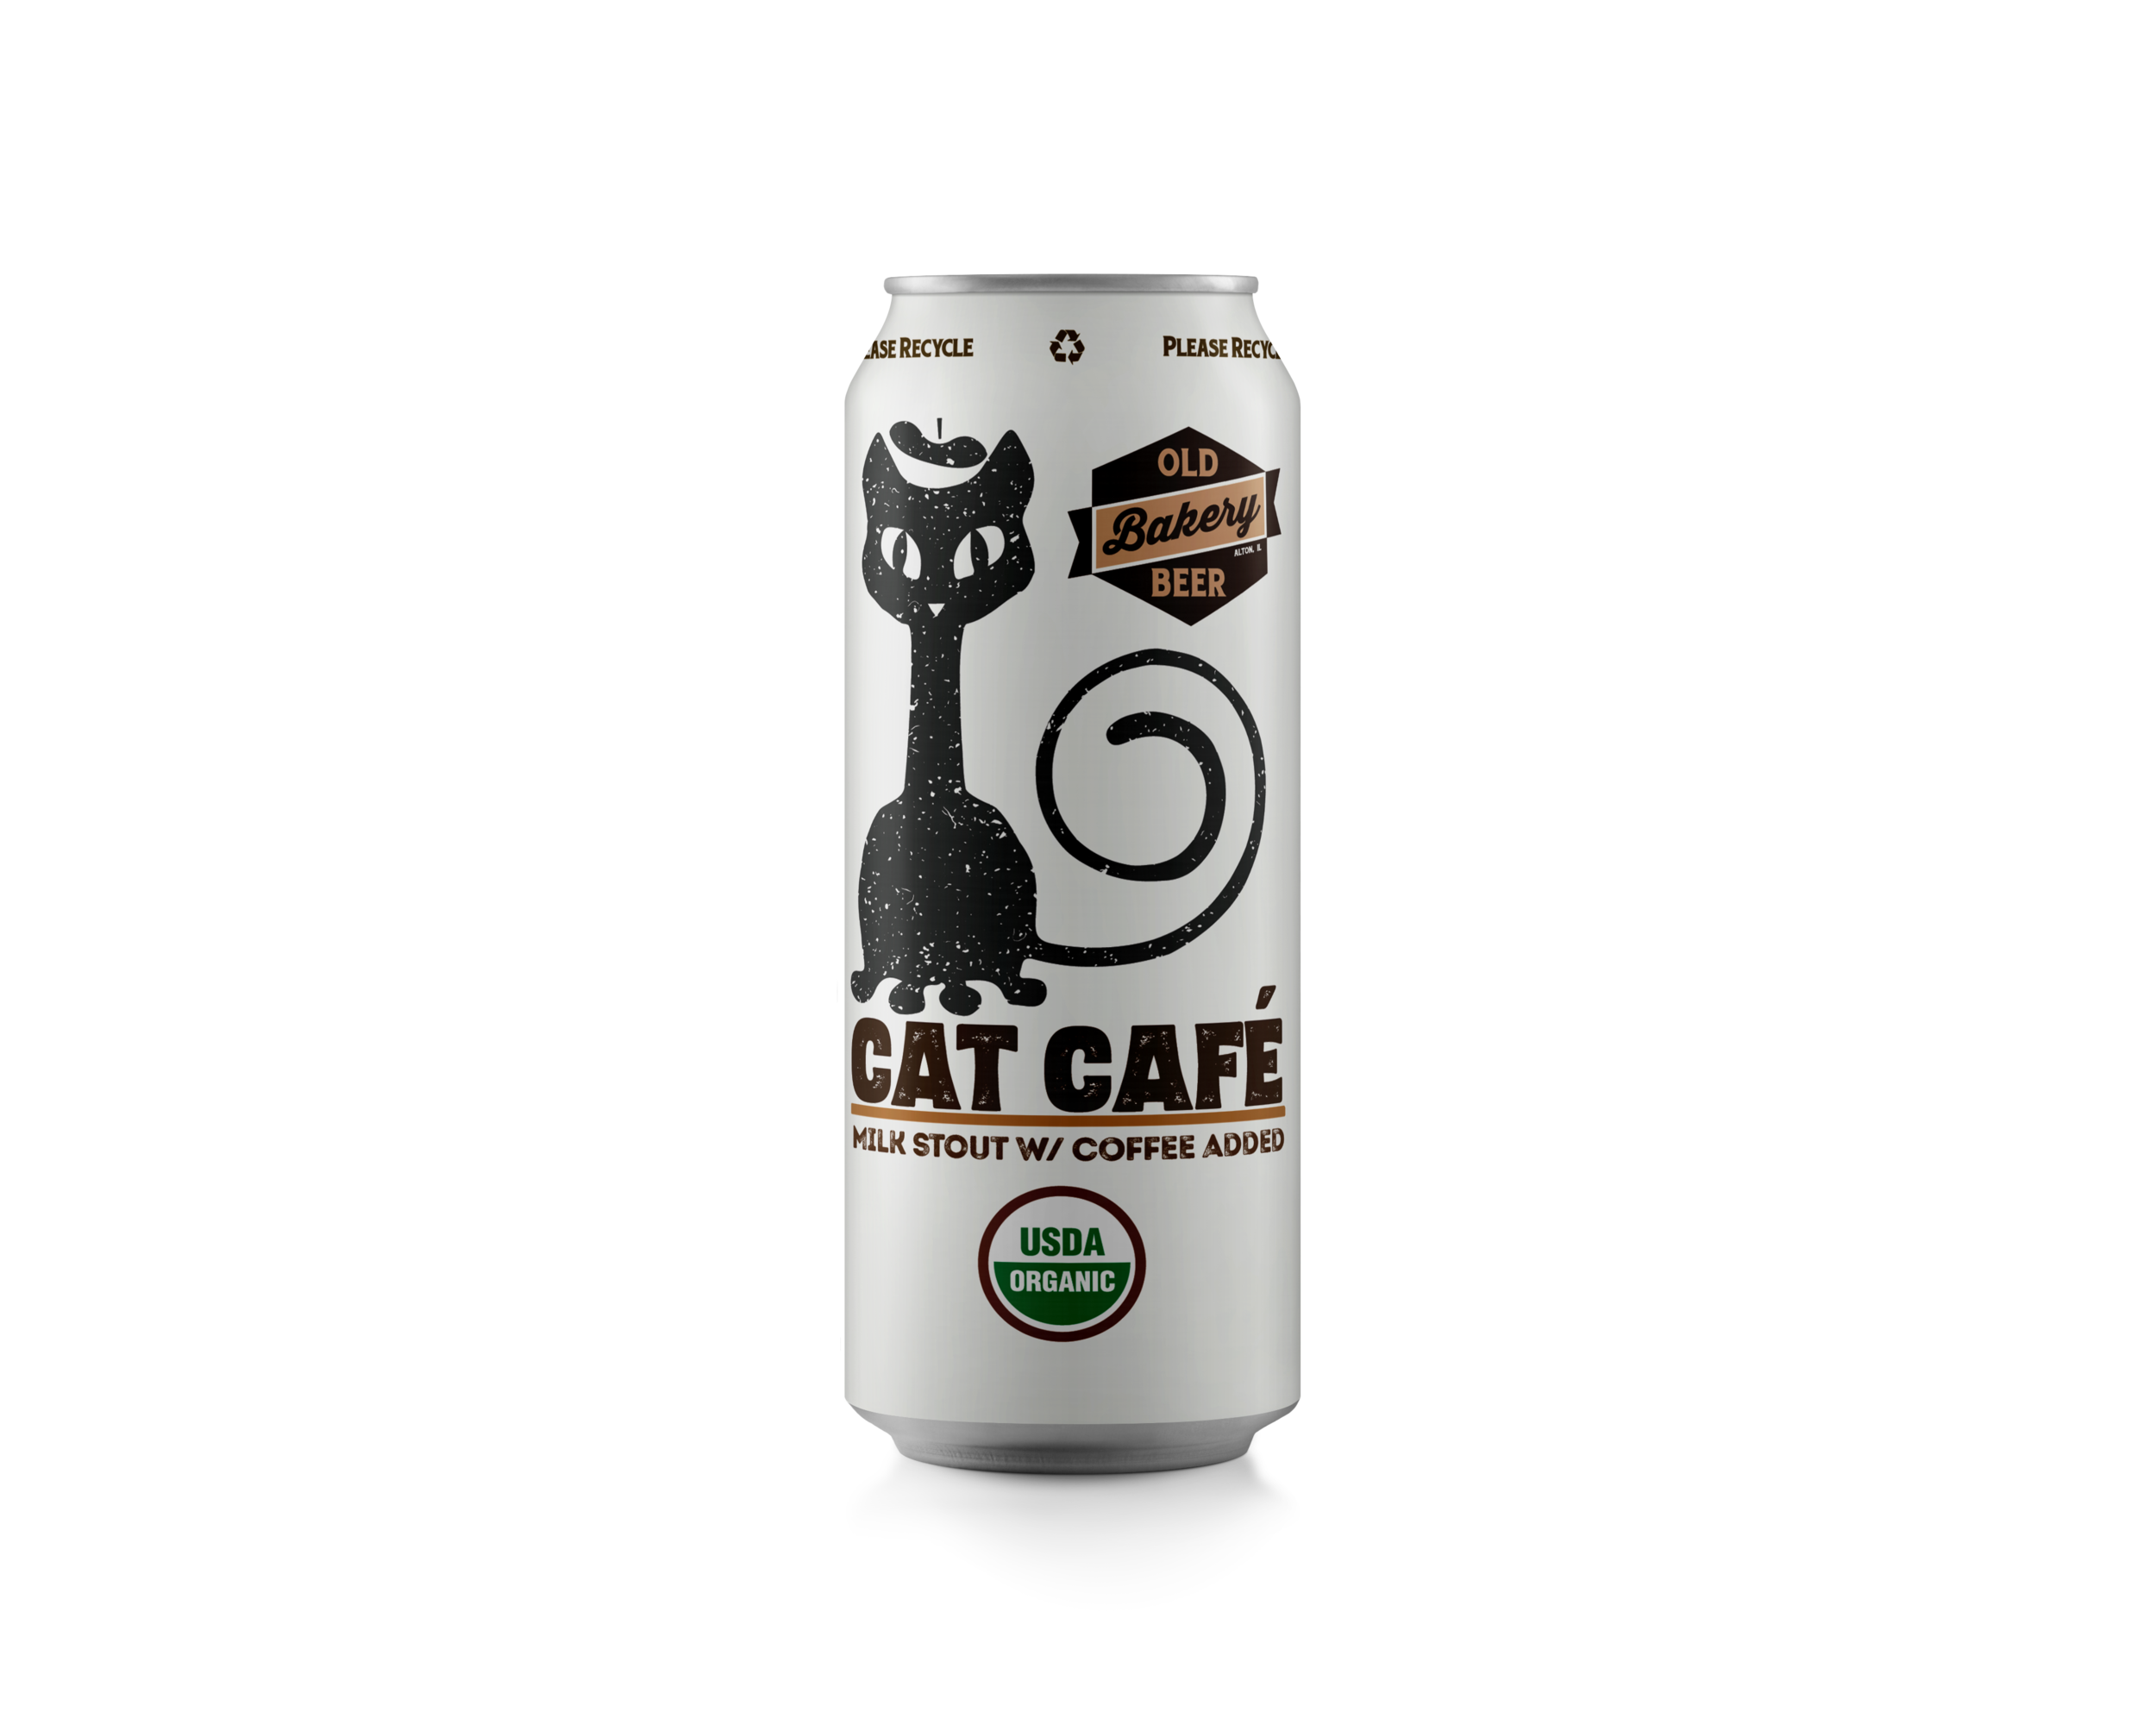 Cat Cafe Can Mockup nobg.png